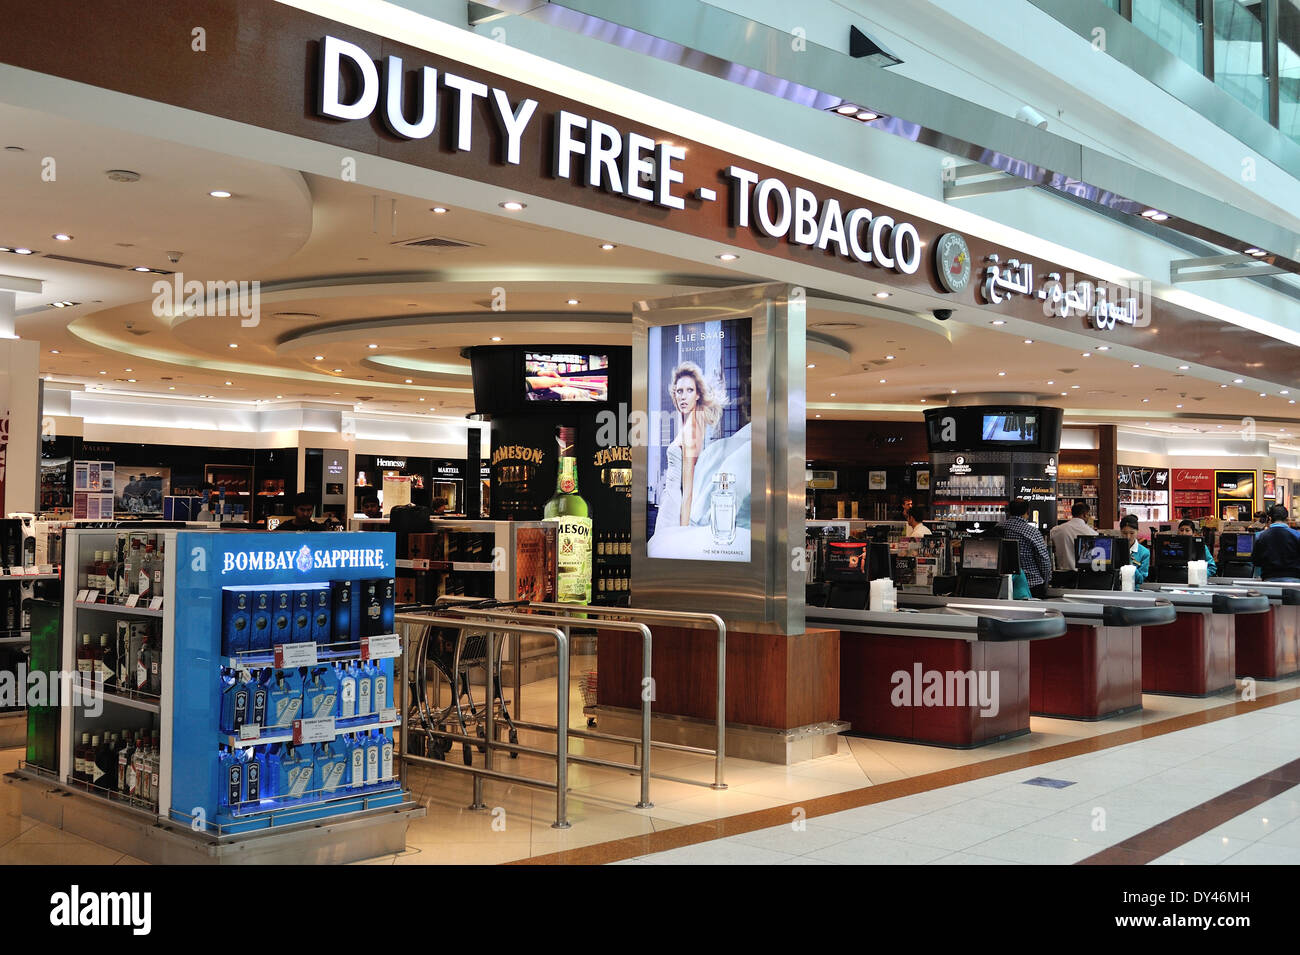 How much are cigarettes at duty free in UK